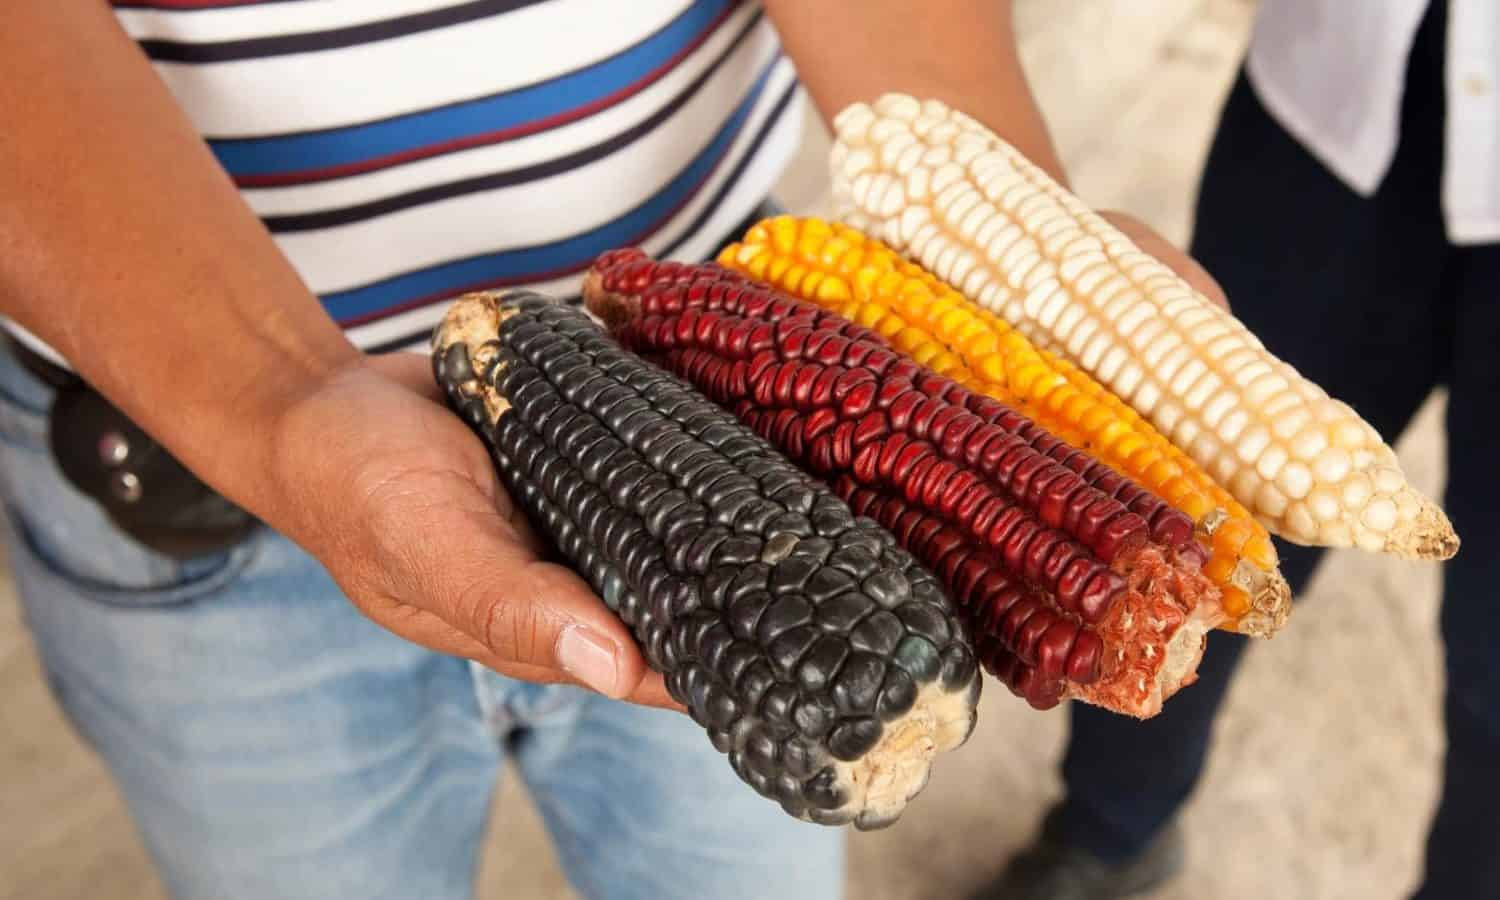 Farmers expected to mobilize in rural Mexico after López Obrador's victory with the hope to bring more sustainability to agricultural practices.